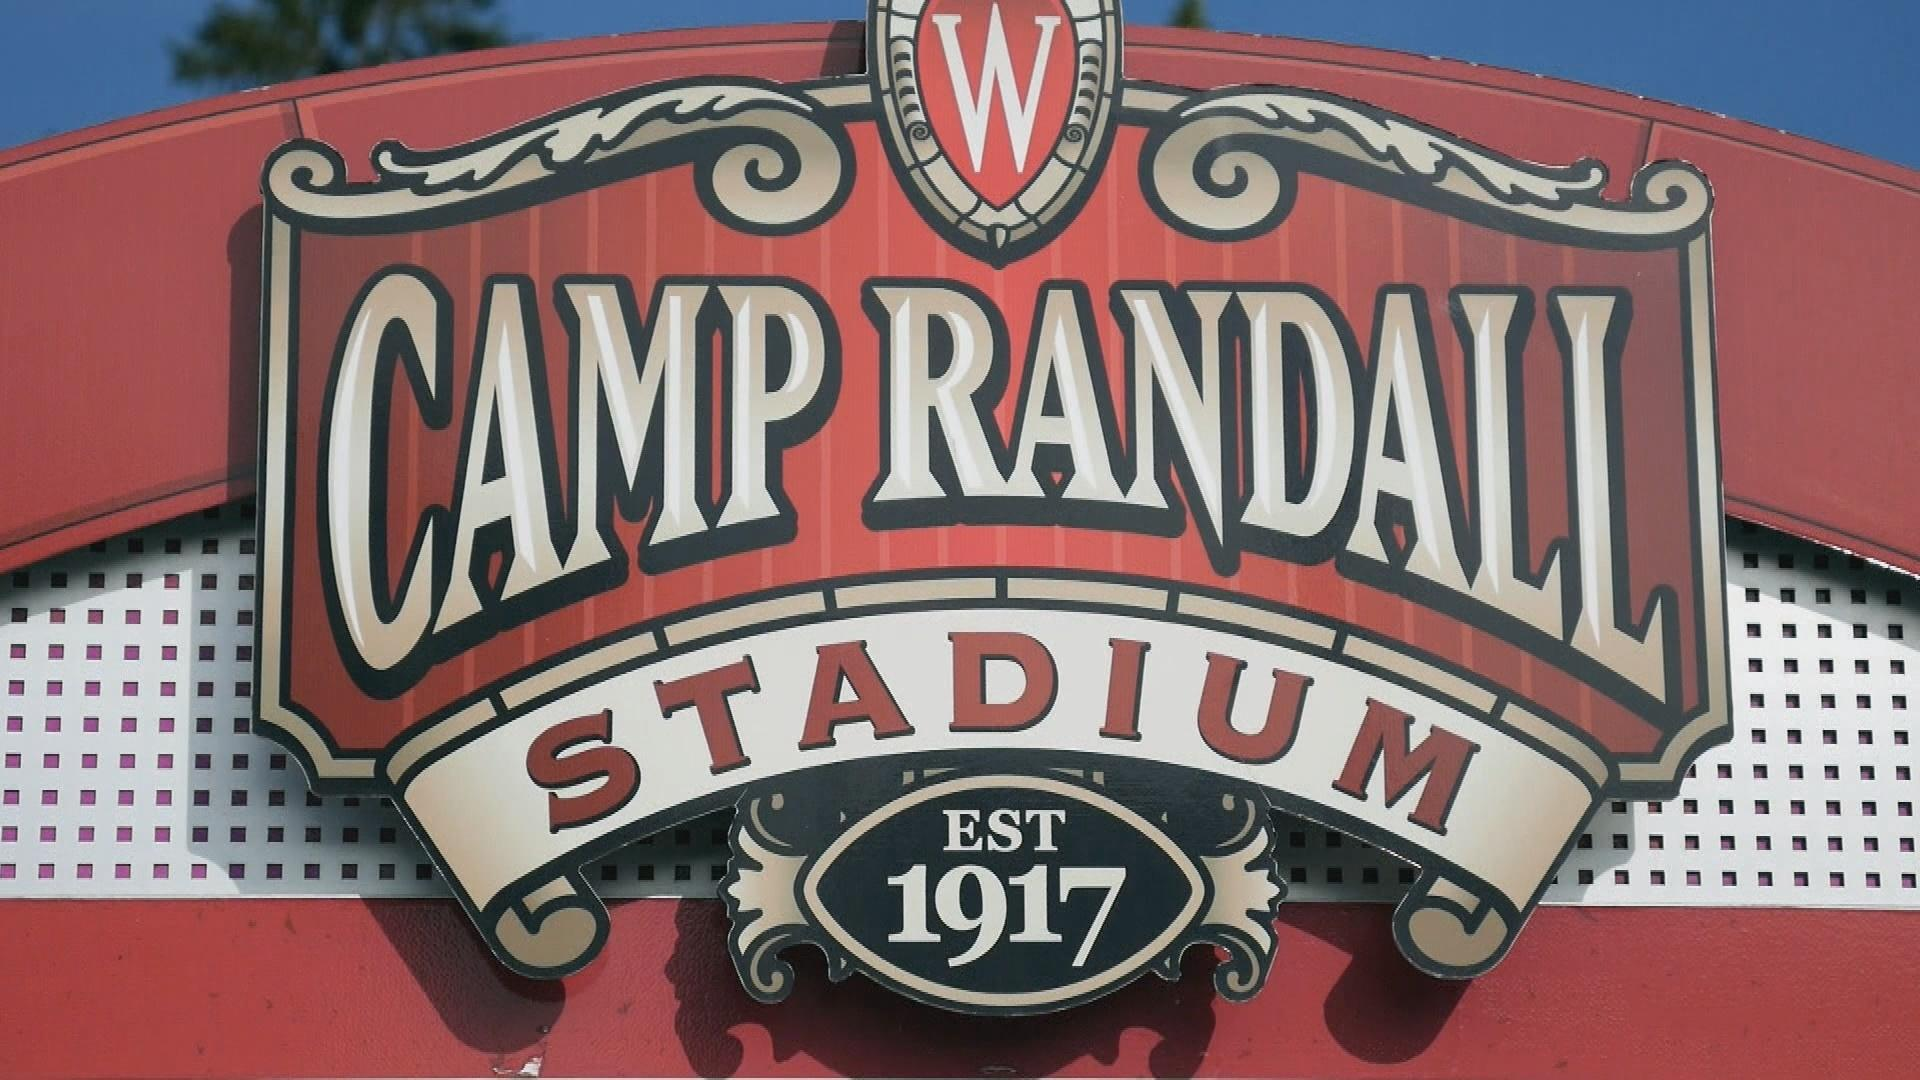 Controversial Statue Removed from Camp Randall